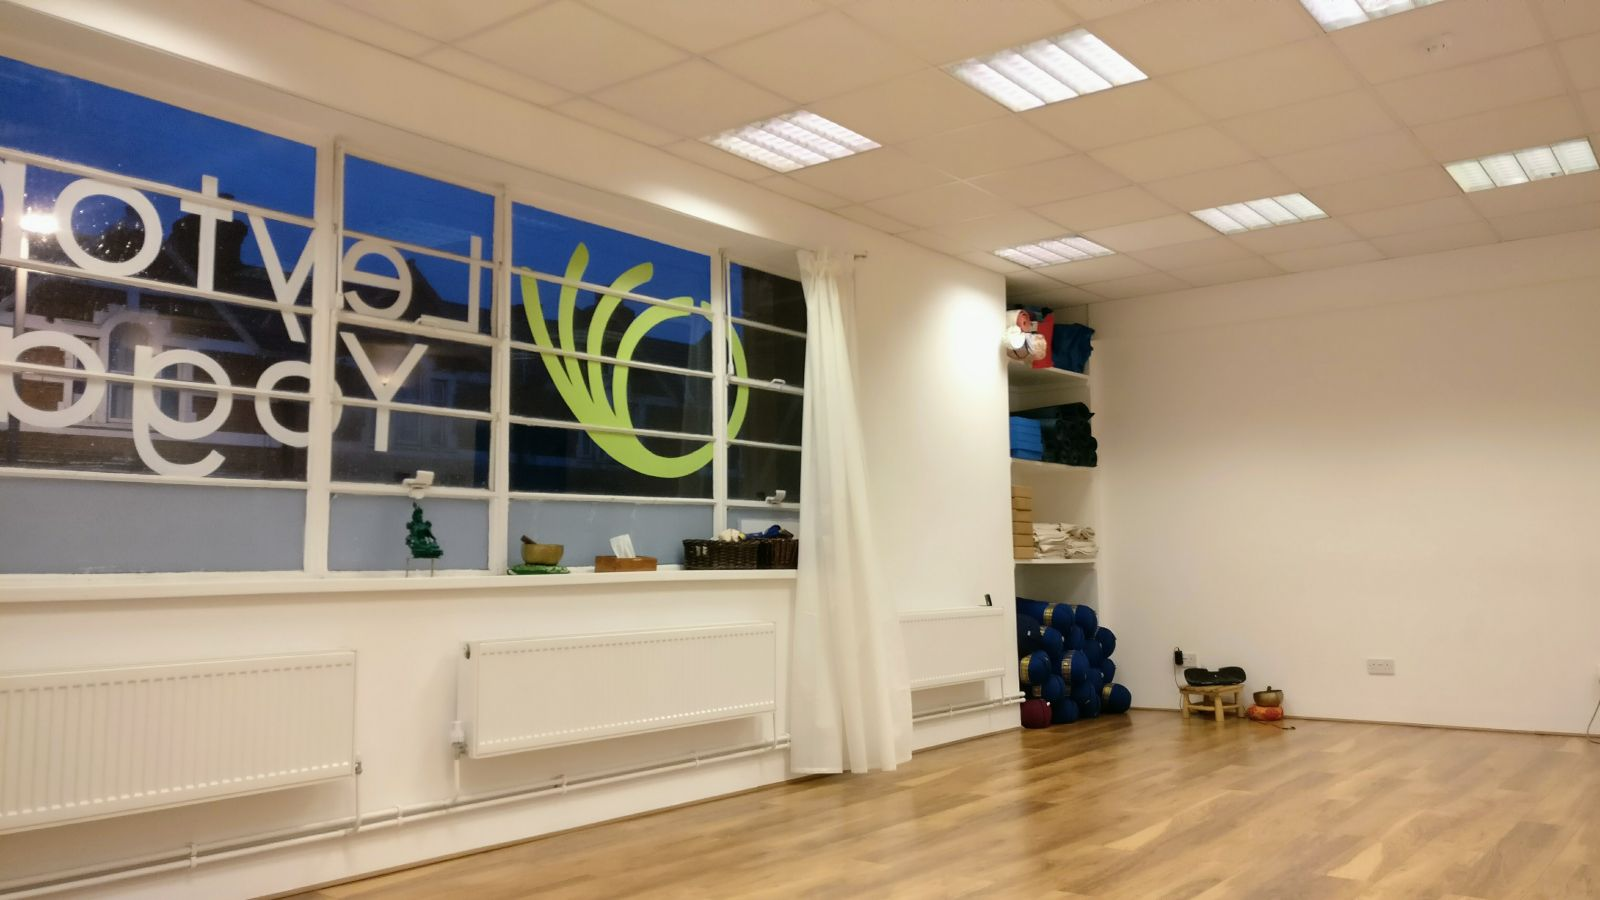 20181127 Leyton Yoga Studio - main hall